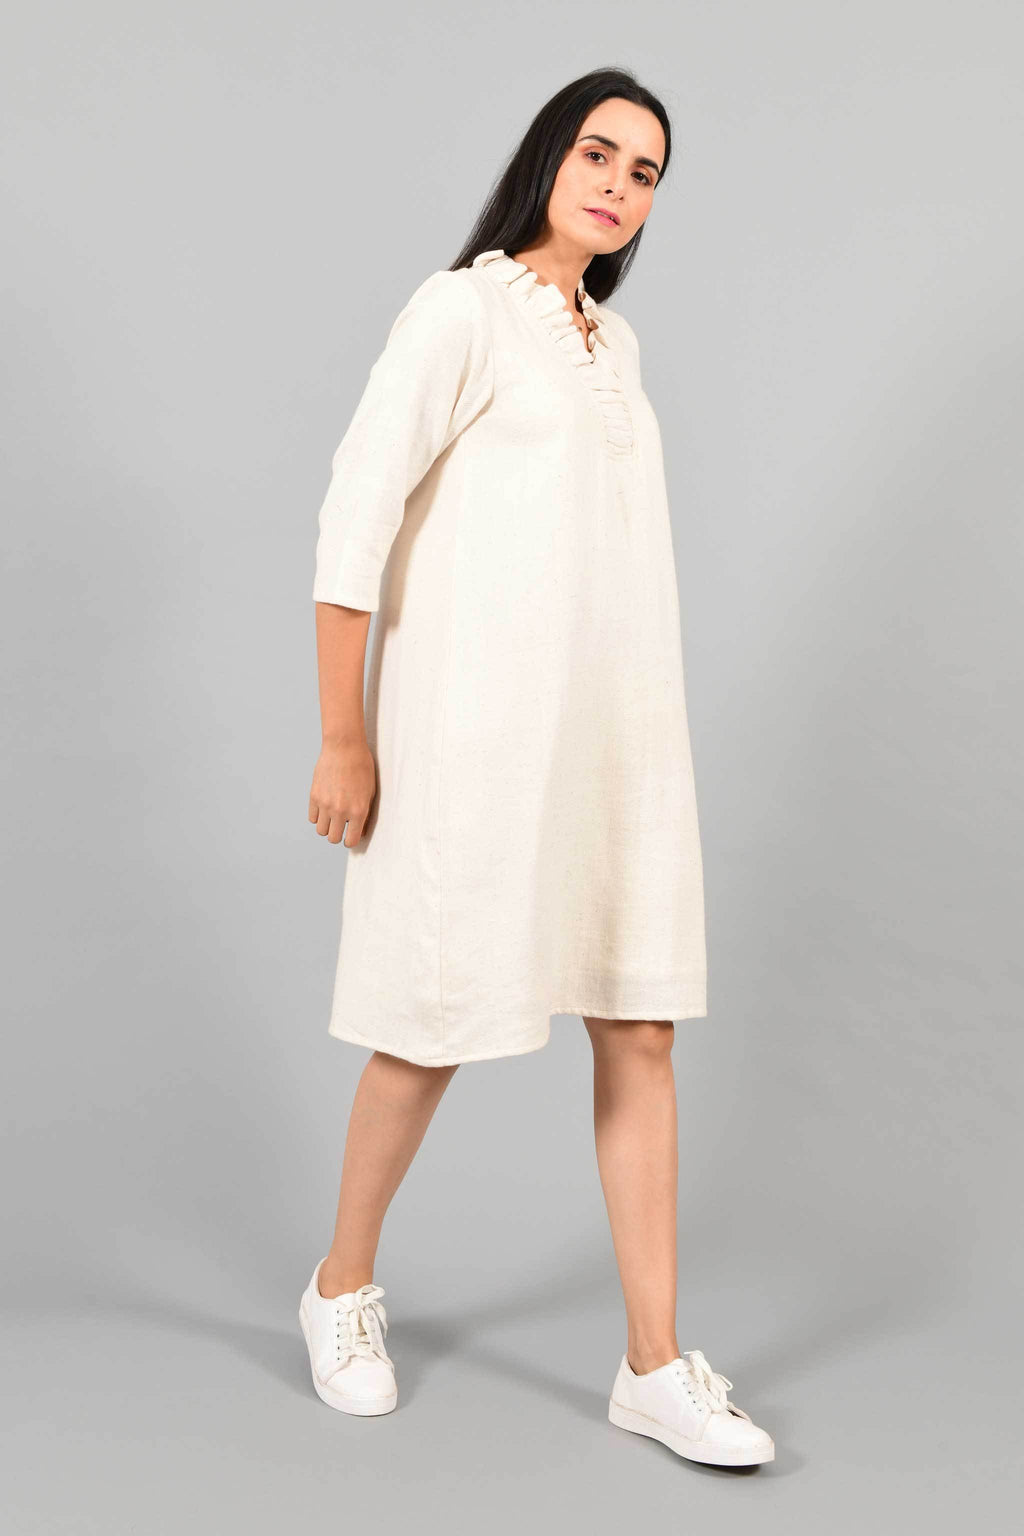 Side pose of an Indian female womenswear fashion model in an off-white Cashmere Cotton Dress with flared neck, made using handspun and handwoven khadi cotton by Cotton Rack.